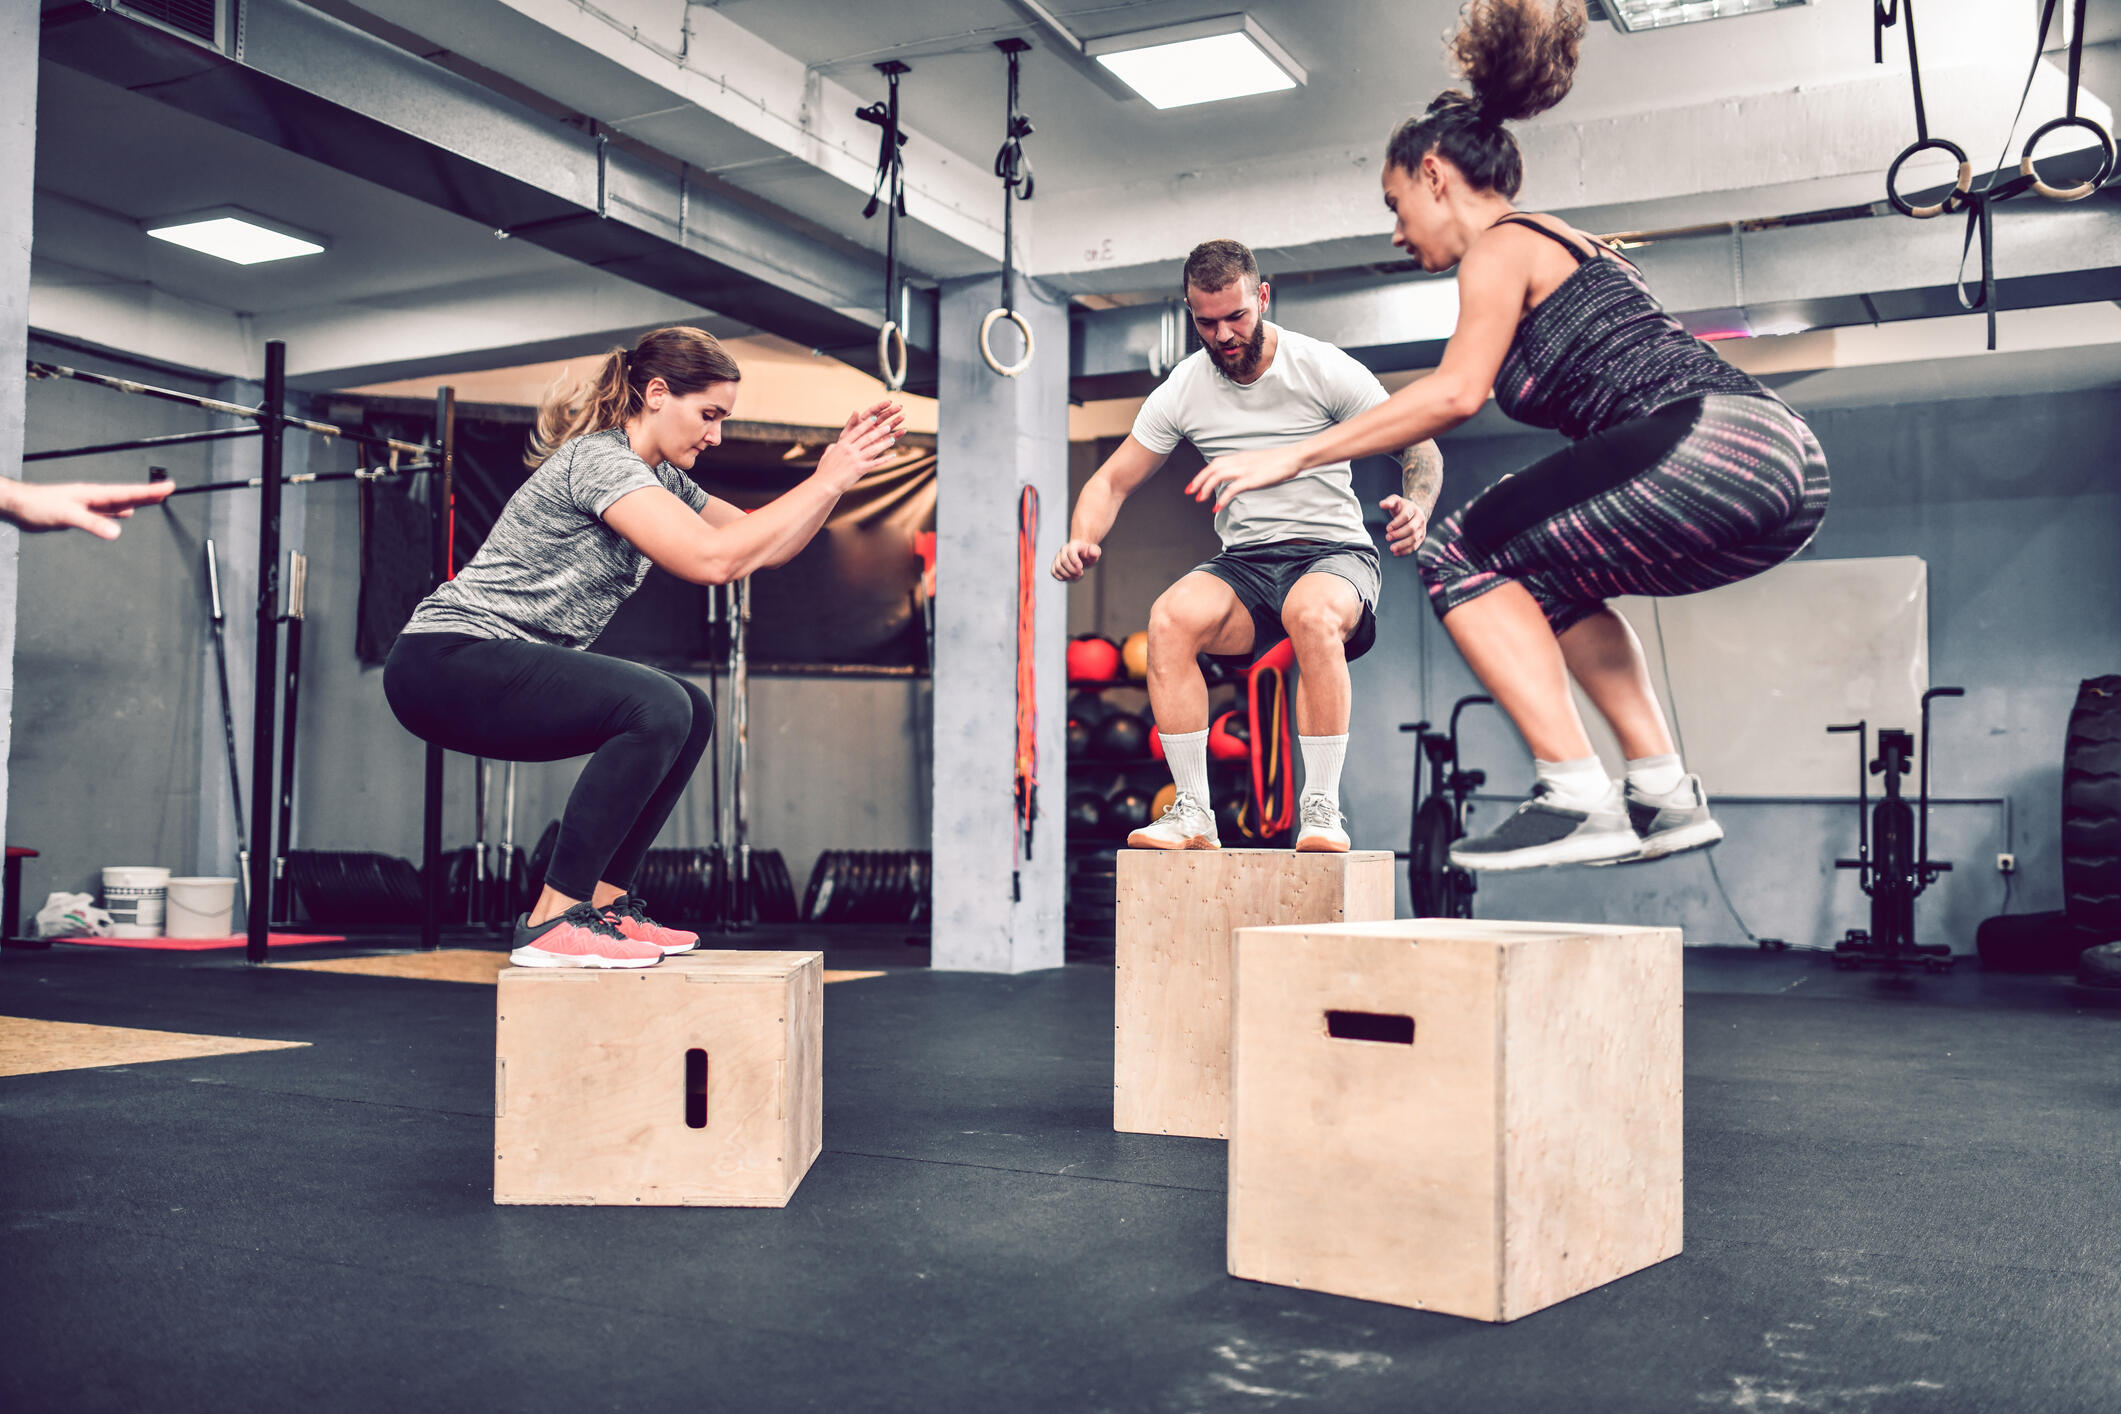 three people in a group fitness class do jumps